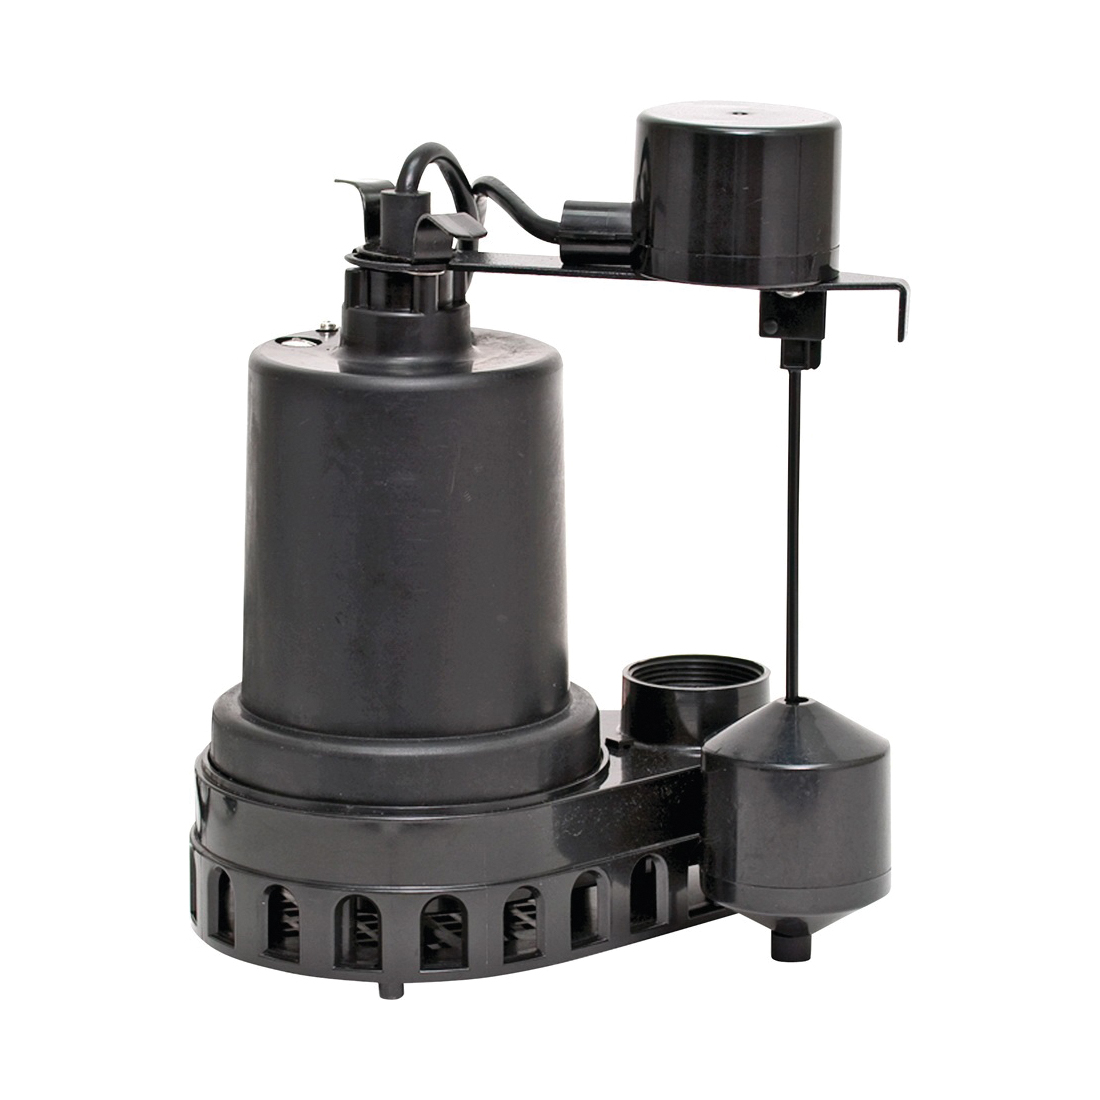 Picture of SUPERIOR PUMP 92572 Sump Pump, 4.9 A, 120 V, 0.5 hp, 1-1/2 in Outlet, 55 gpm, Thermoplastic